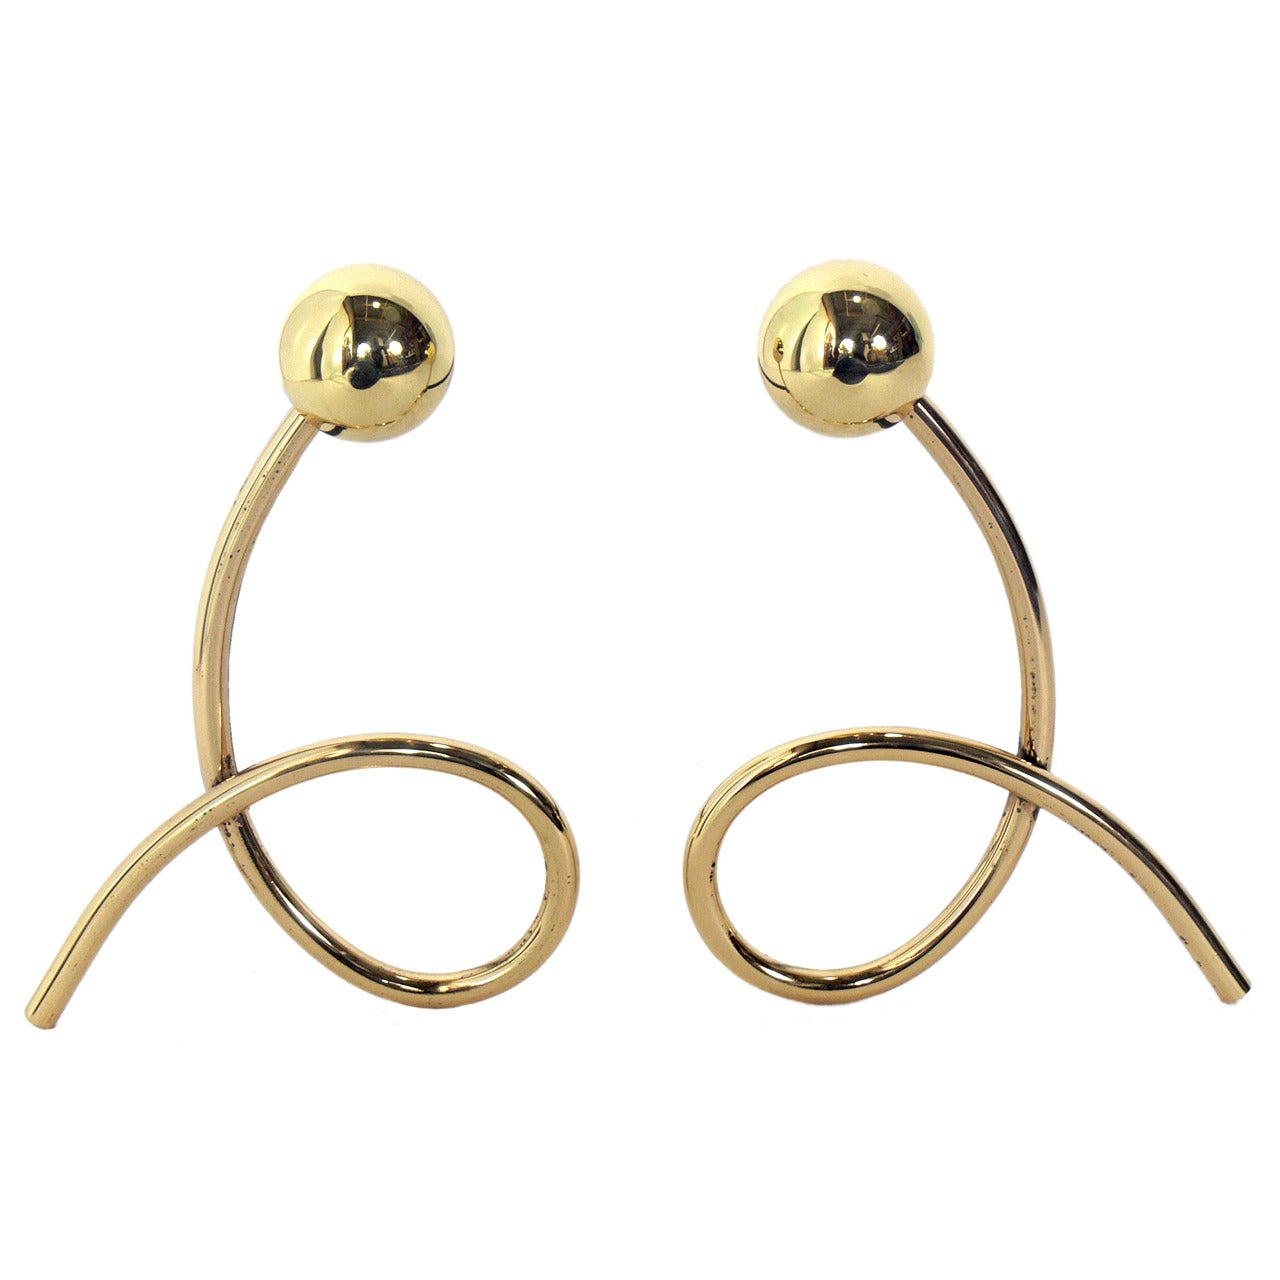 Whimsical Brass Loop Andirons